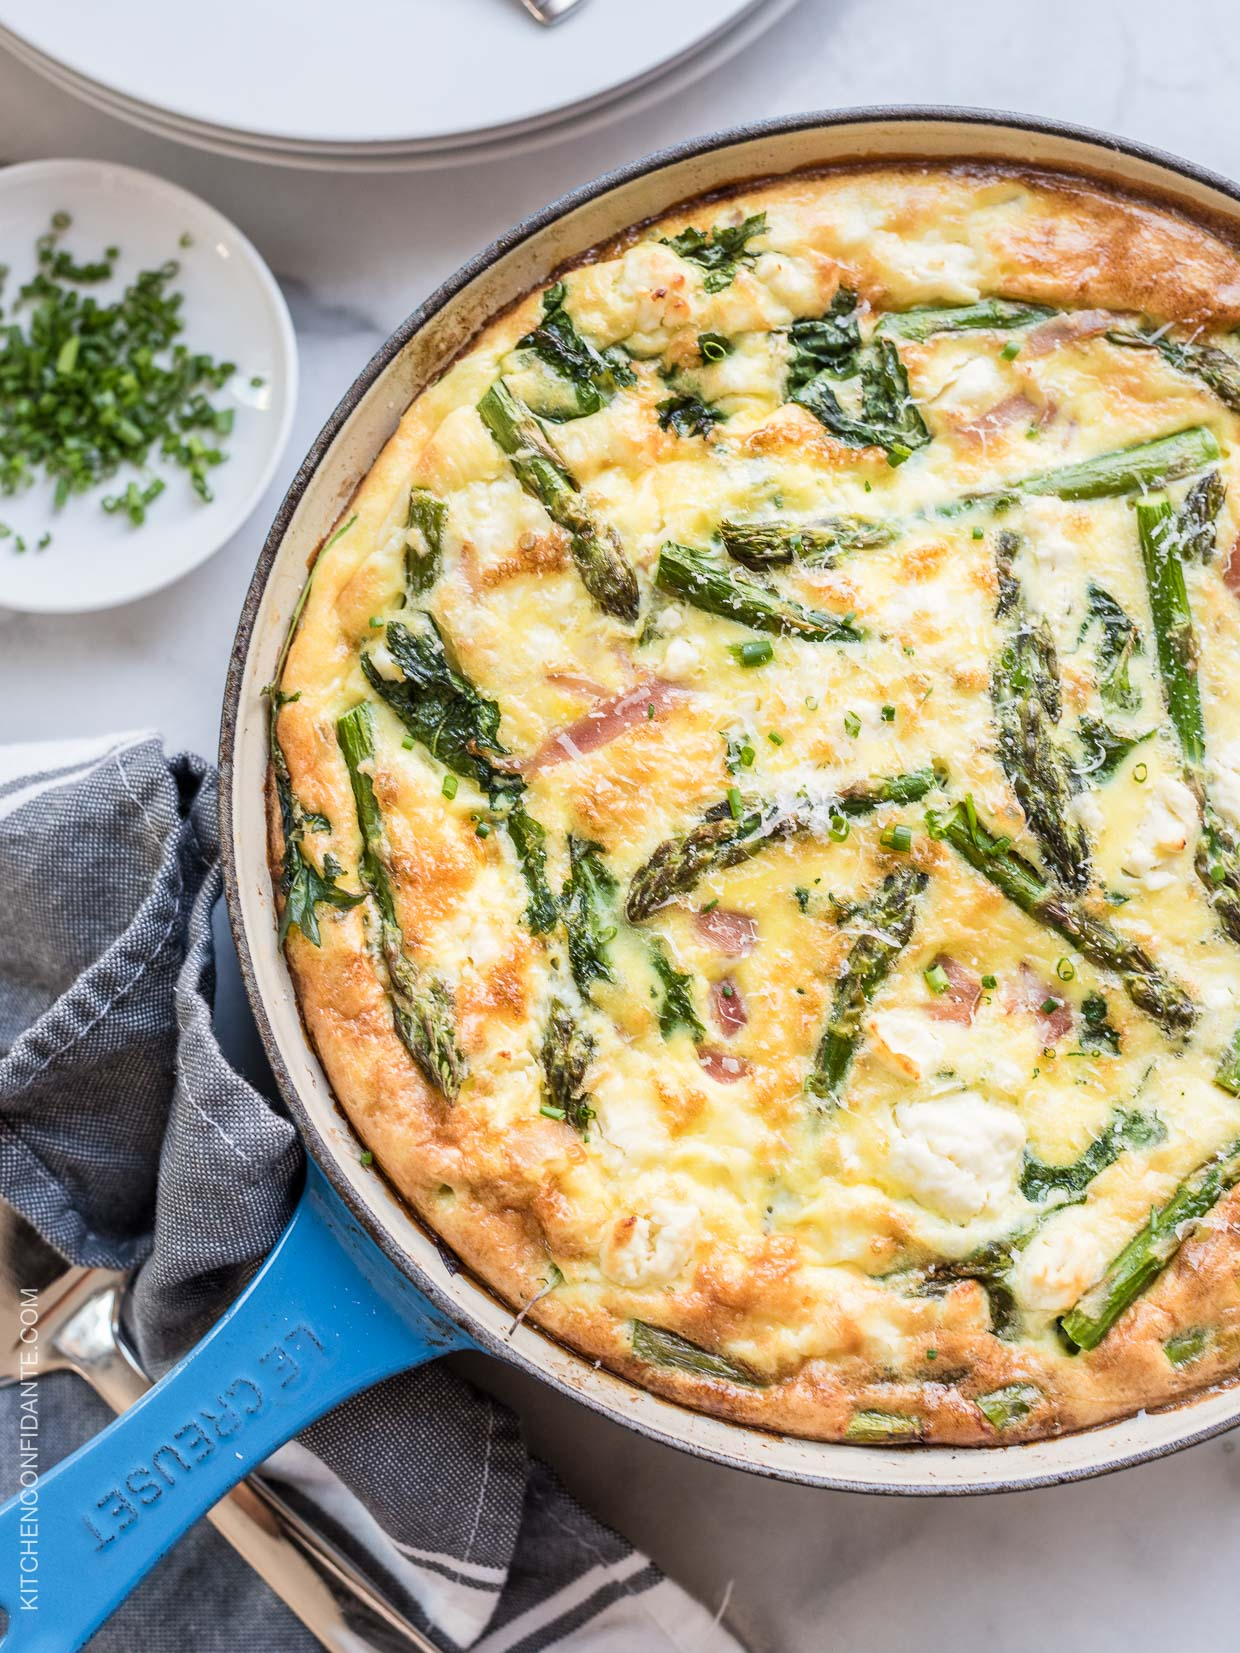 Asparagus, Ham and Kale Frittata from kitchenconfidante.com on foodiecrush.com